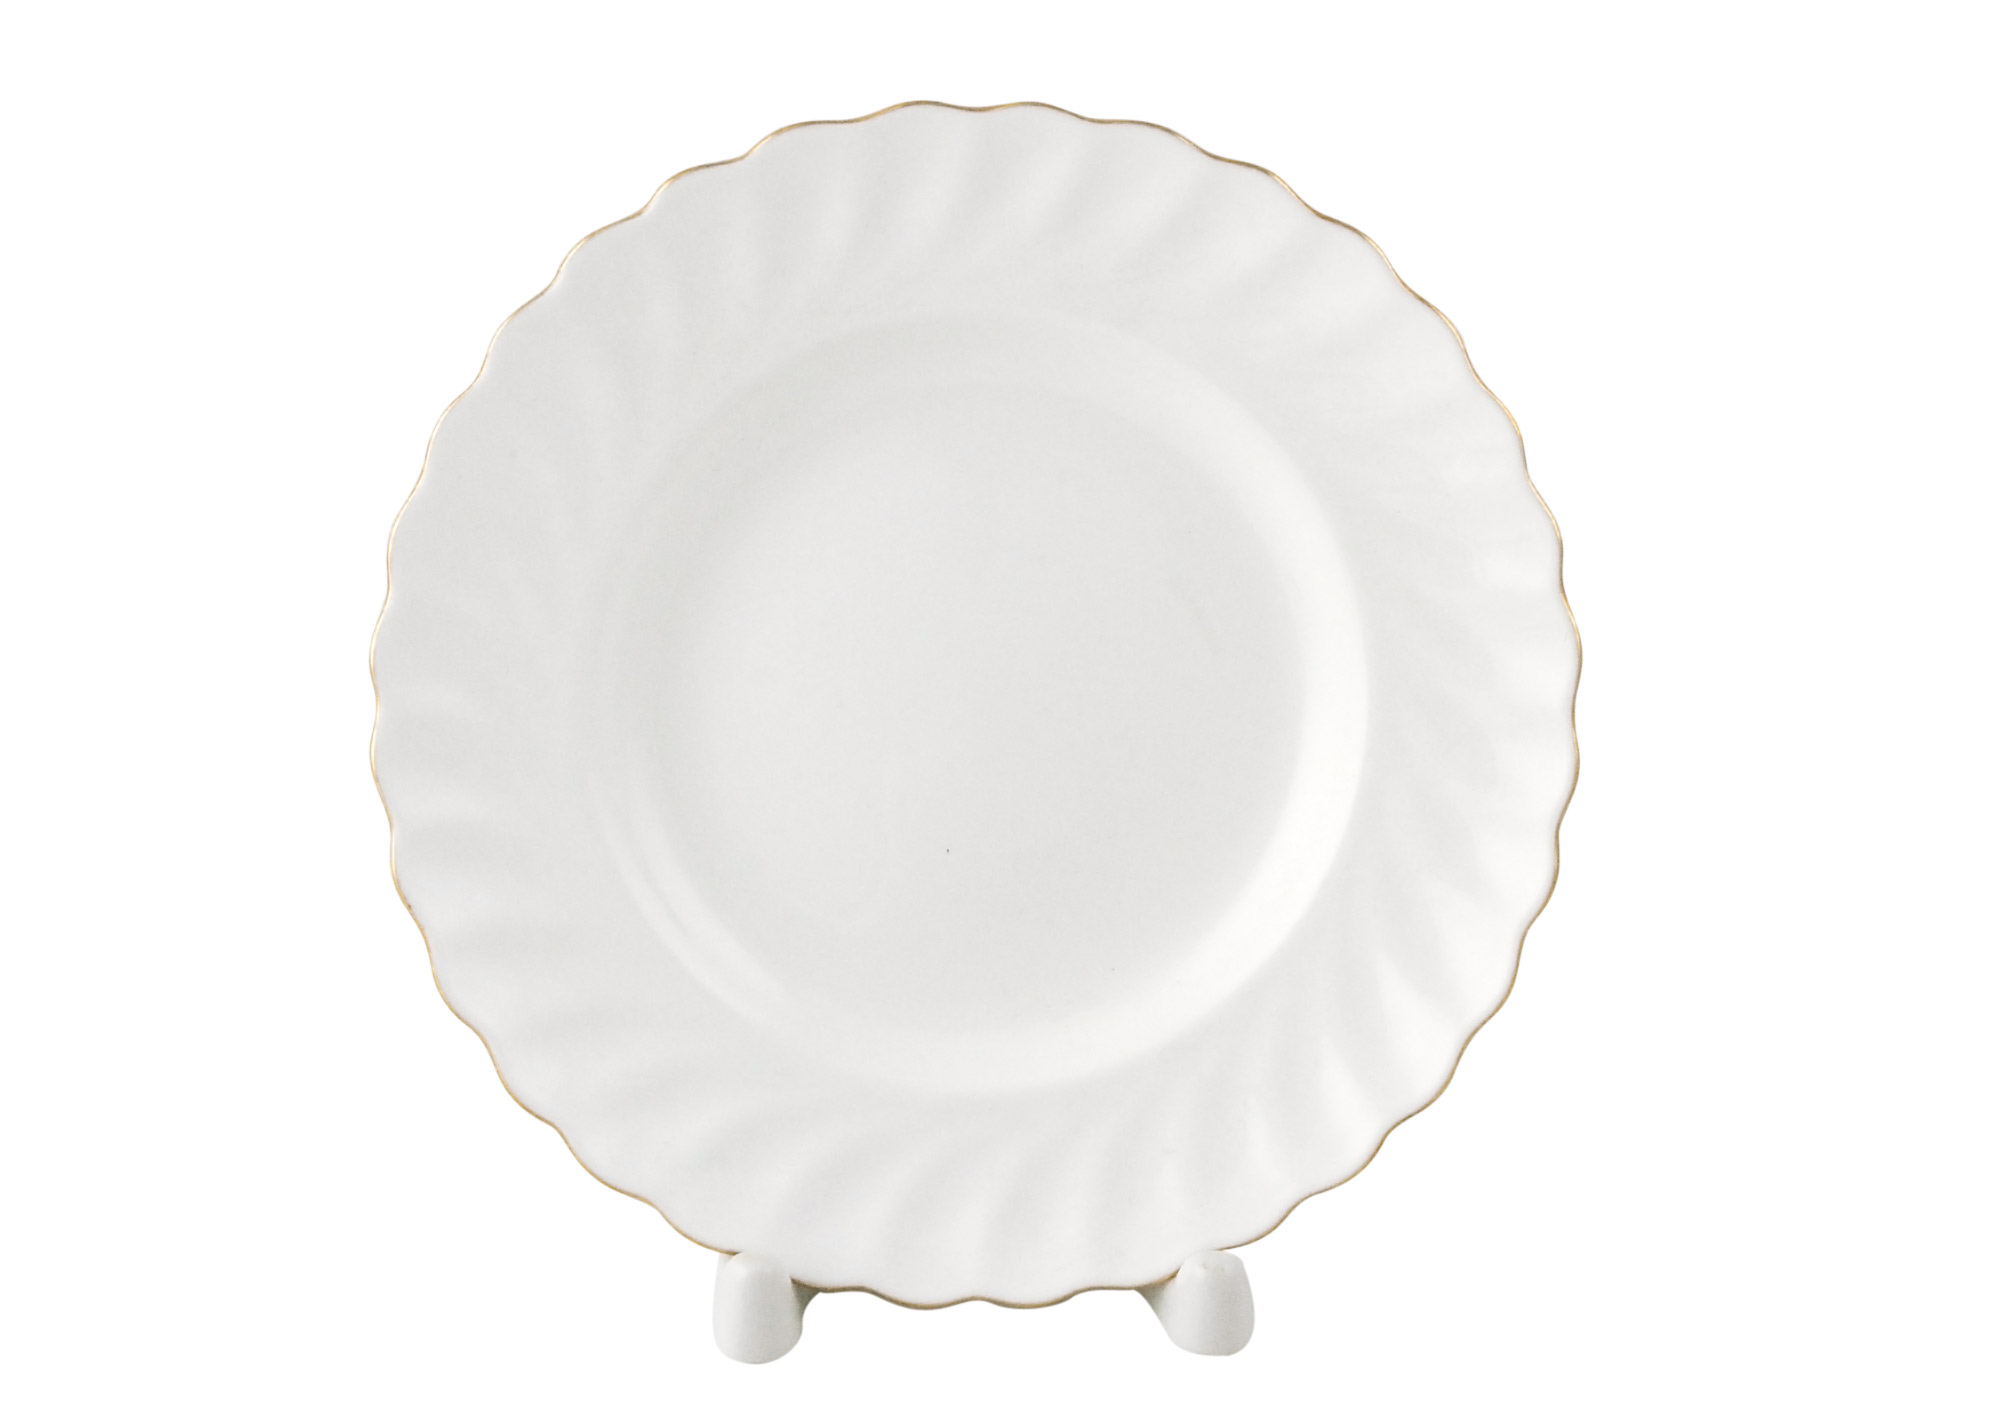 Buy Golden Edge Dessert Plate, Bone China TWIST at GoldenCockerel.com